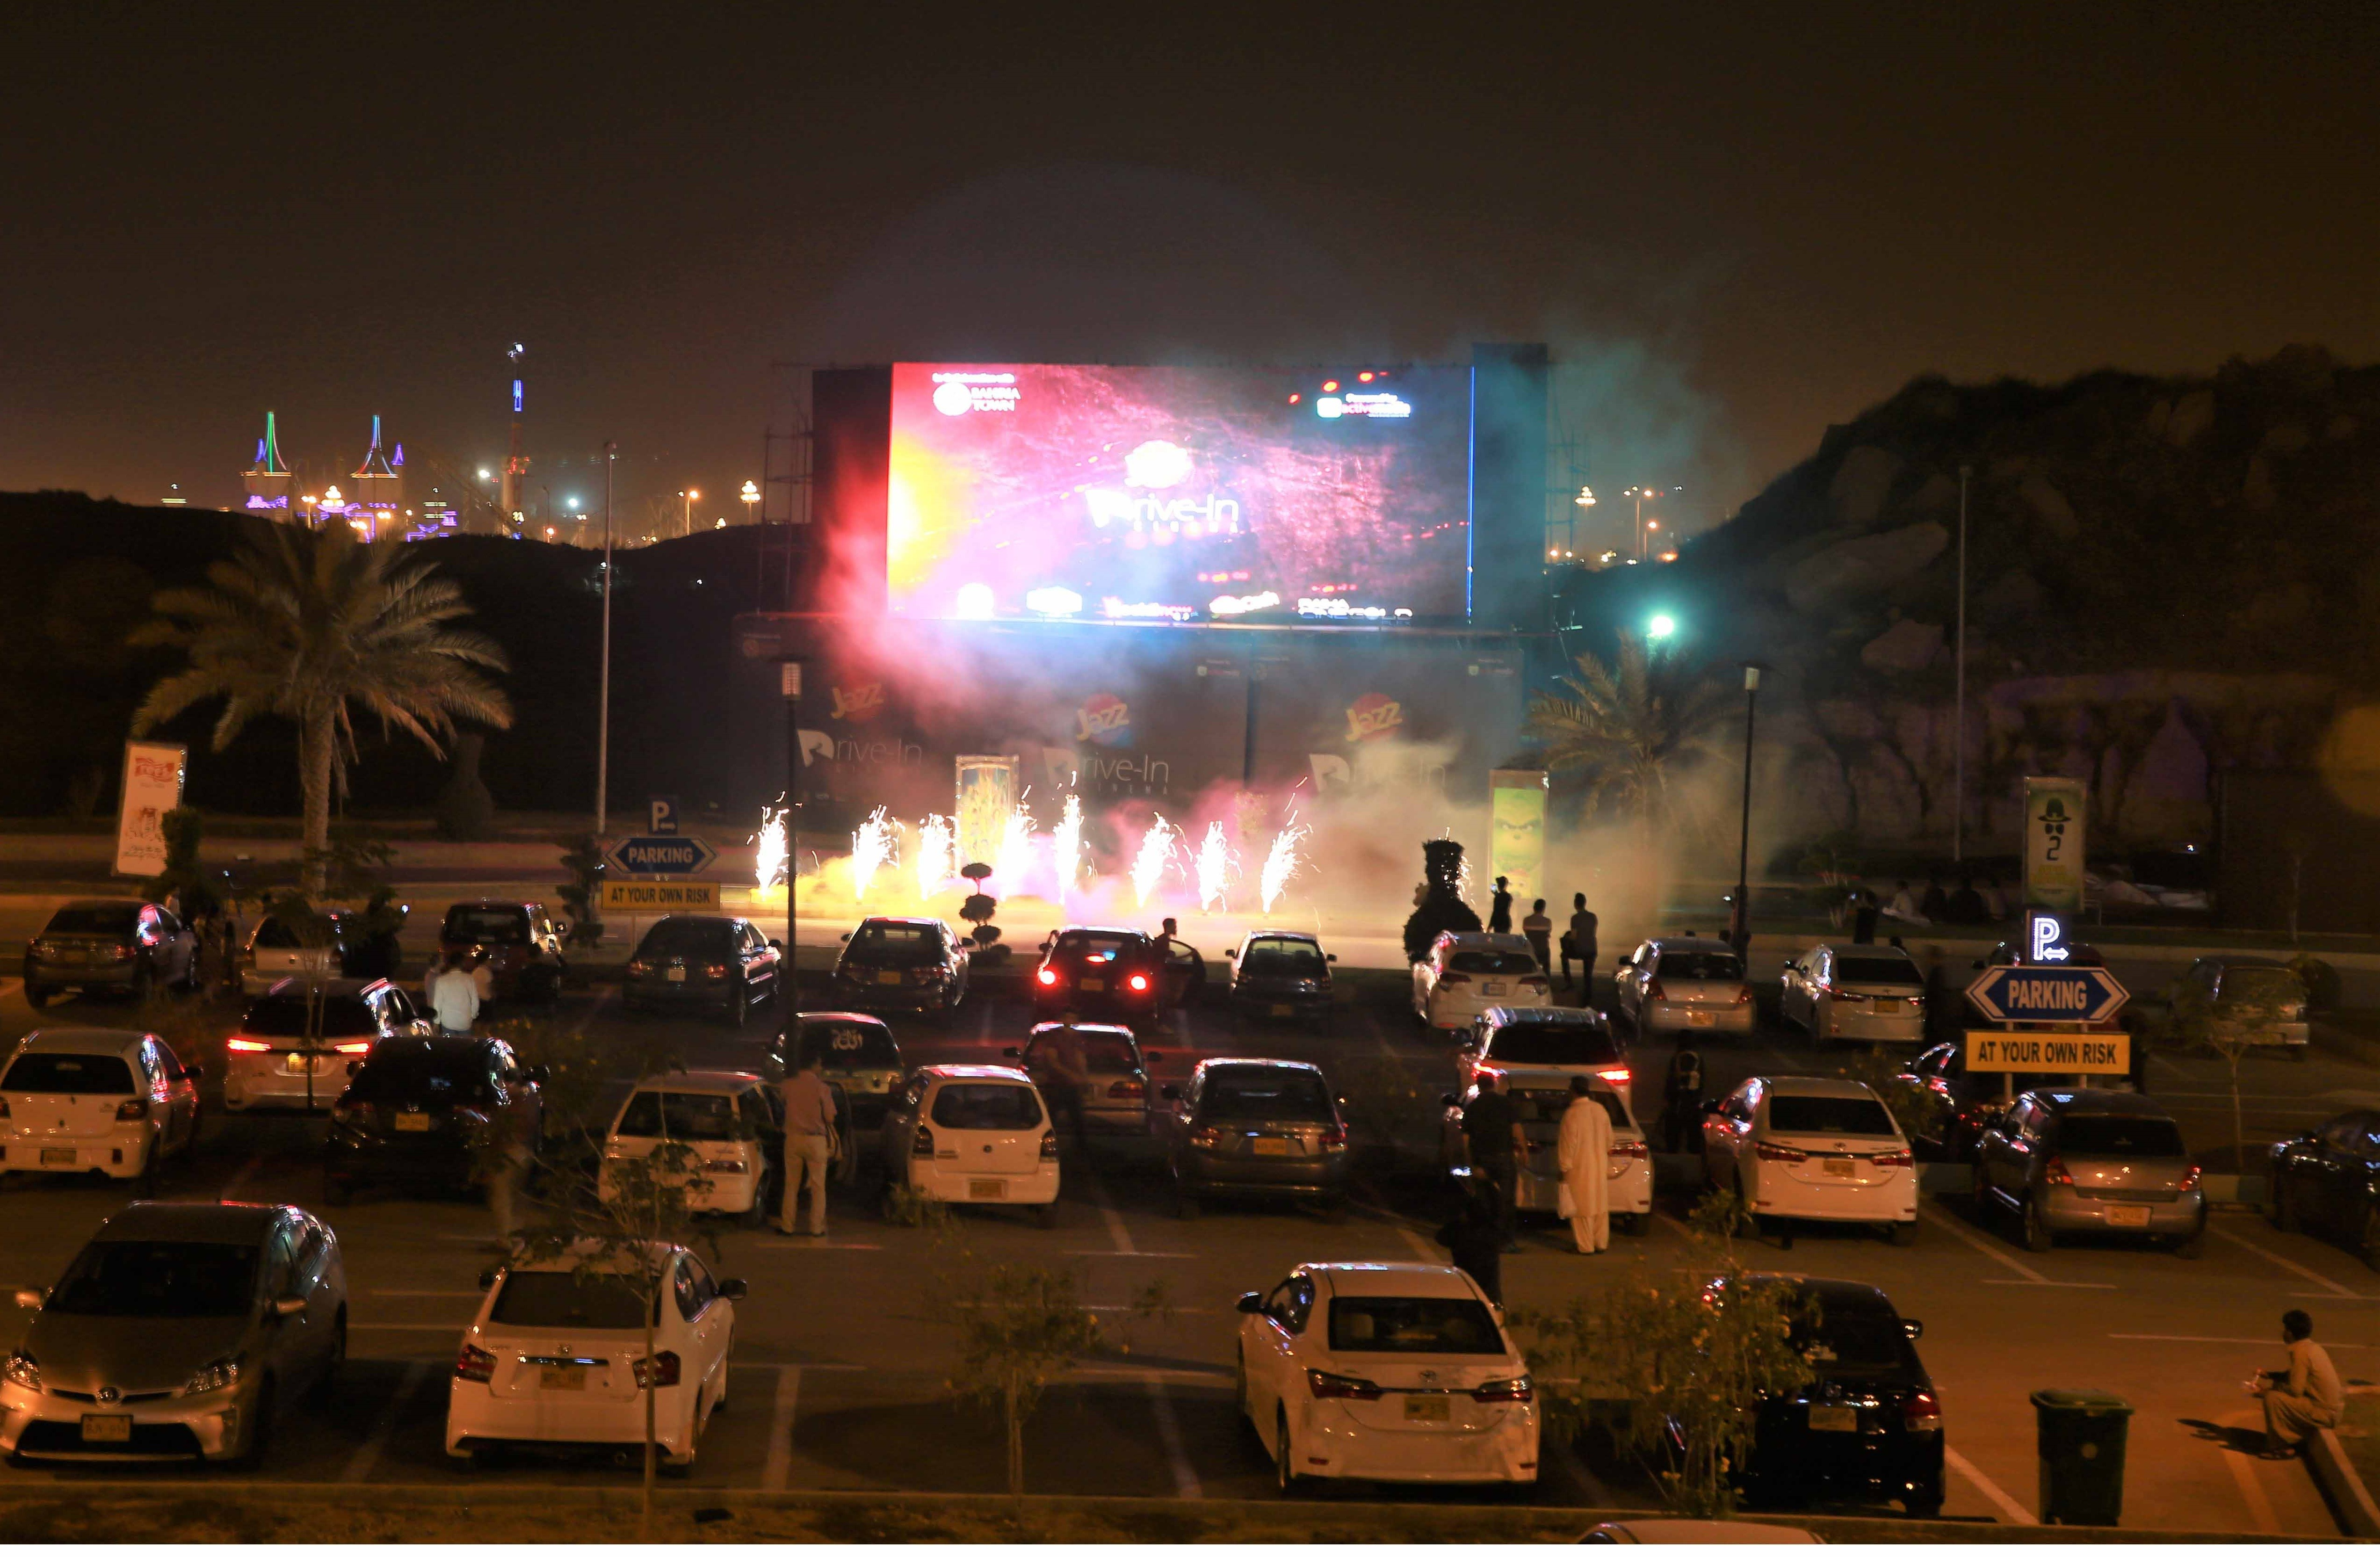 Jazz Drive-In Cinema starts screening in Karachi